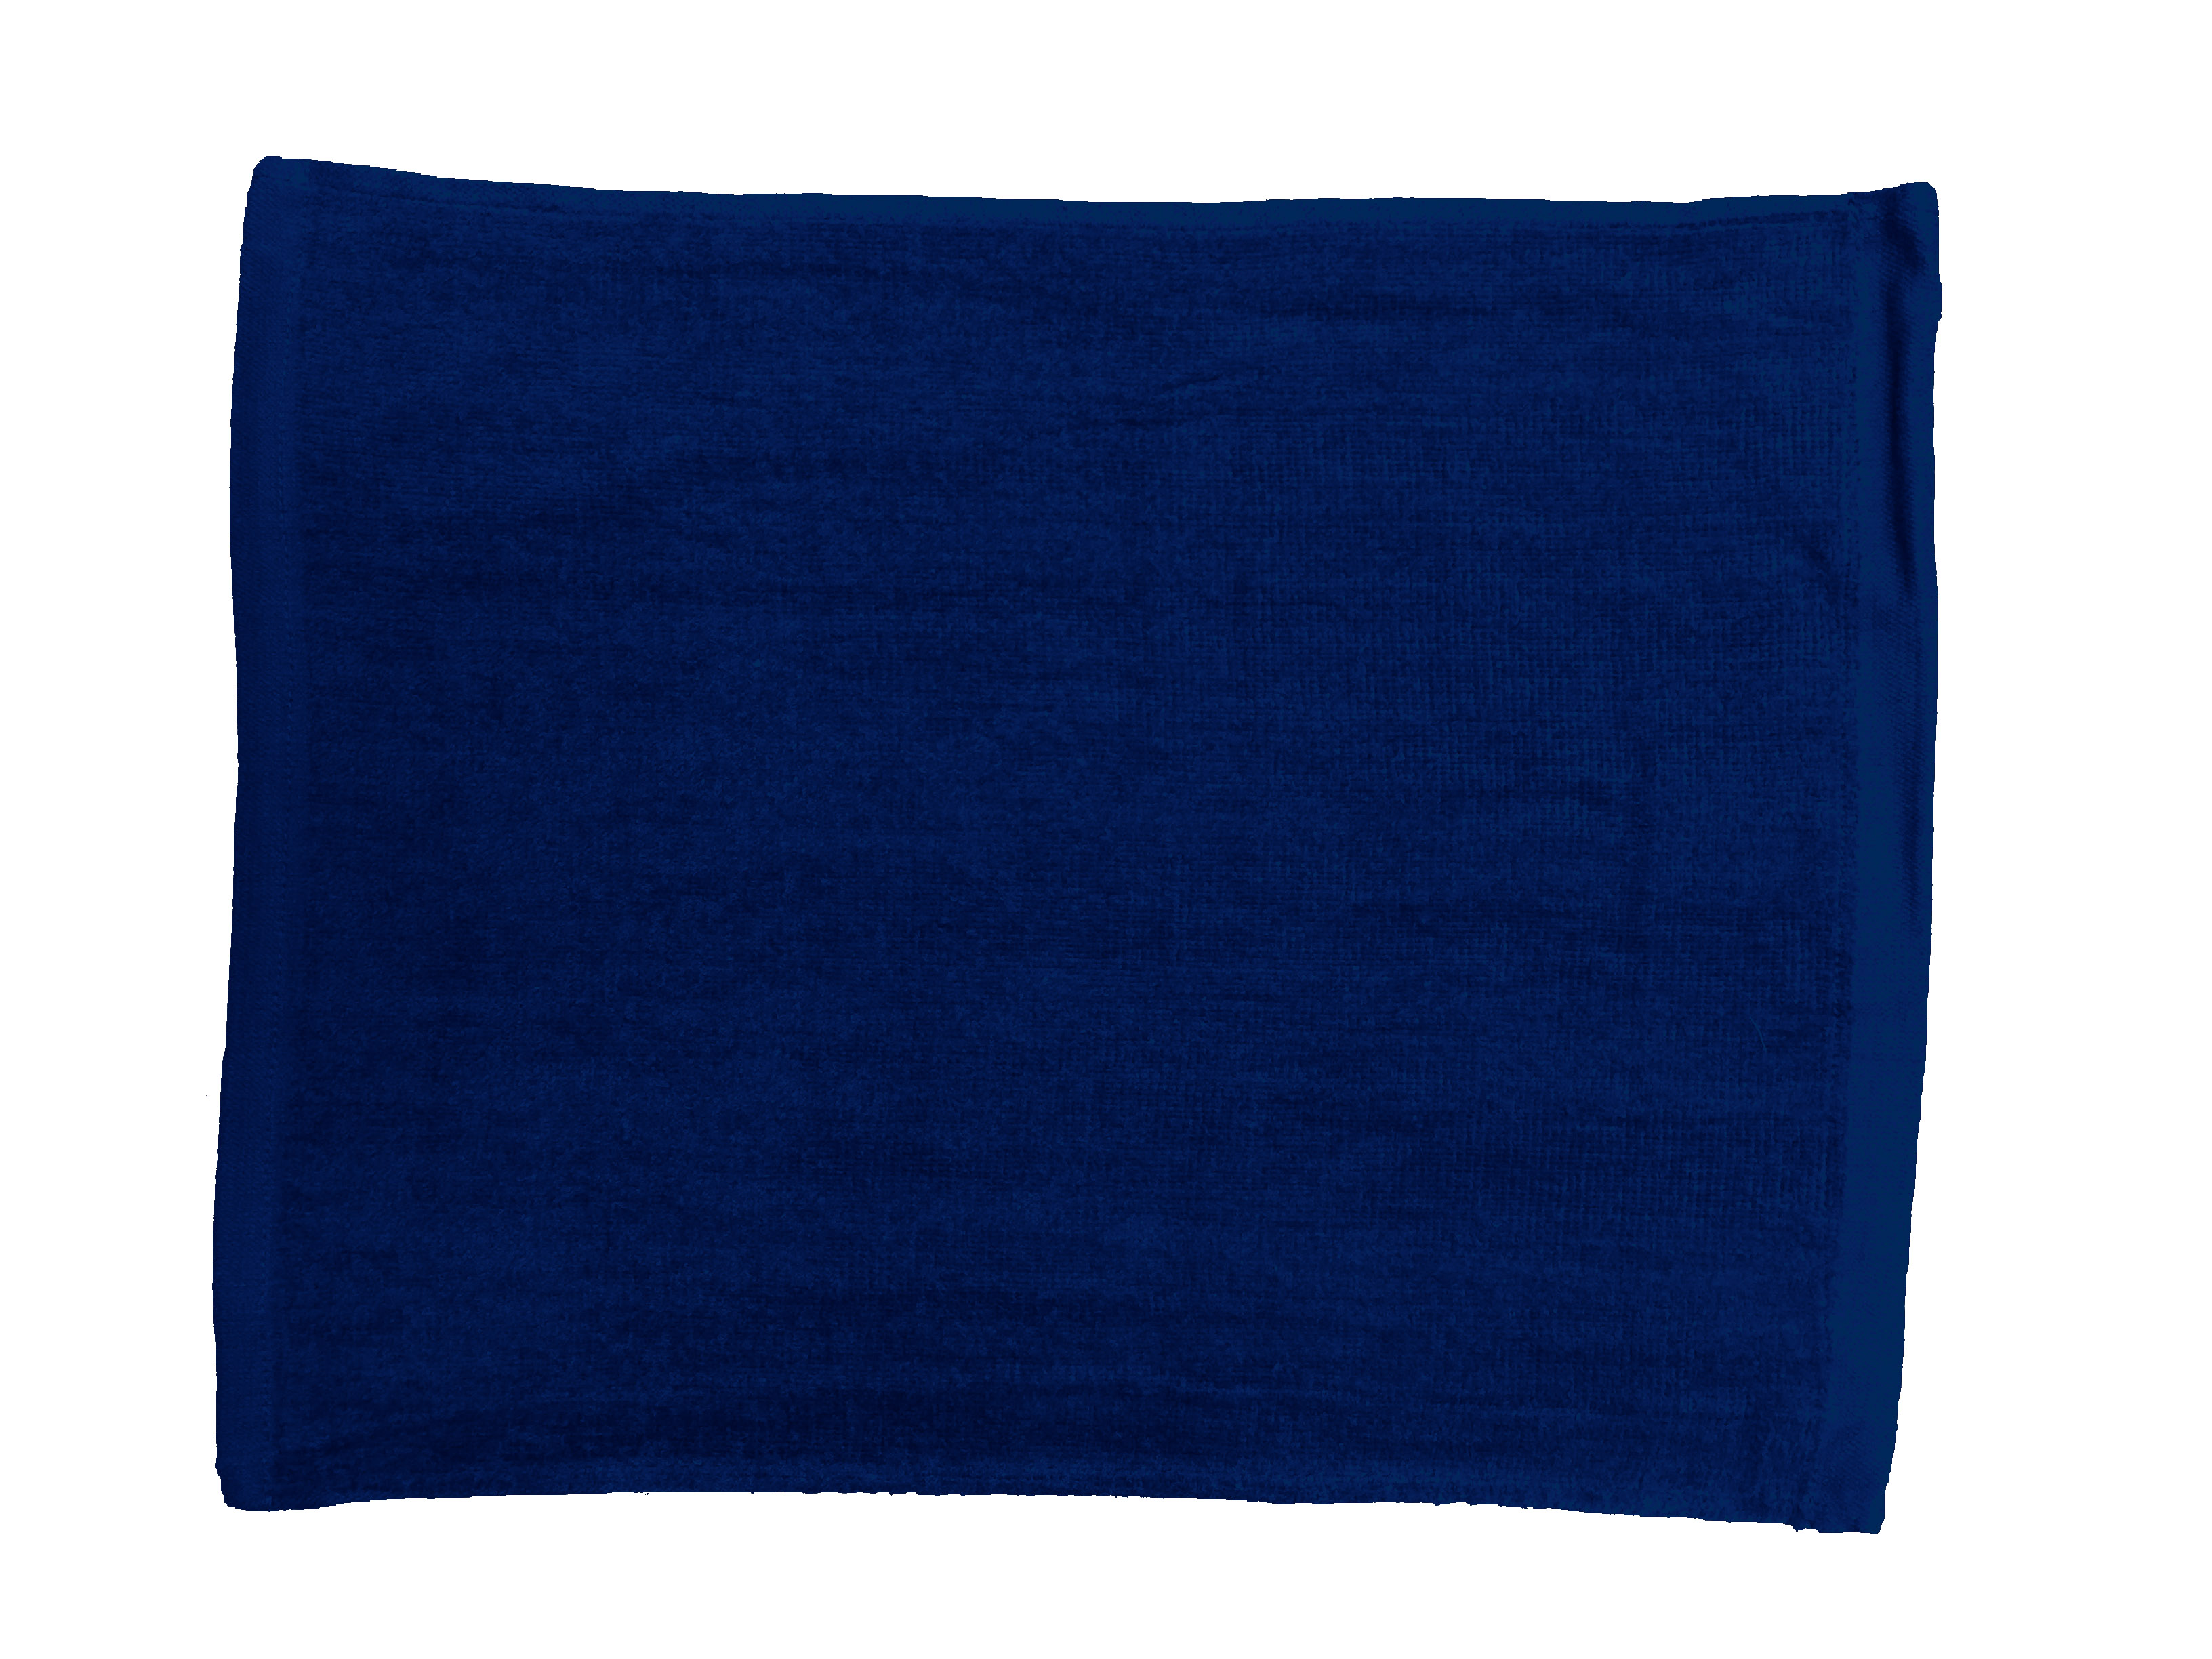 Cotton Love Com Embroidered 15x18 Rally Towel Terry